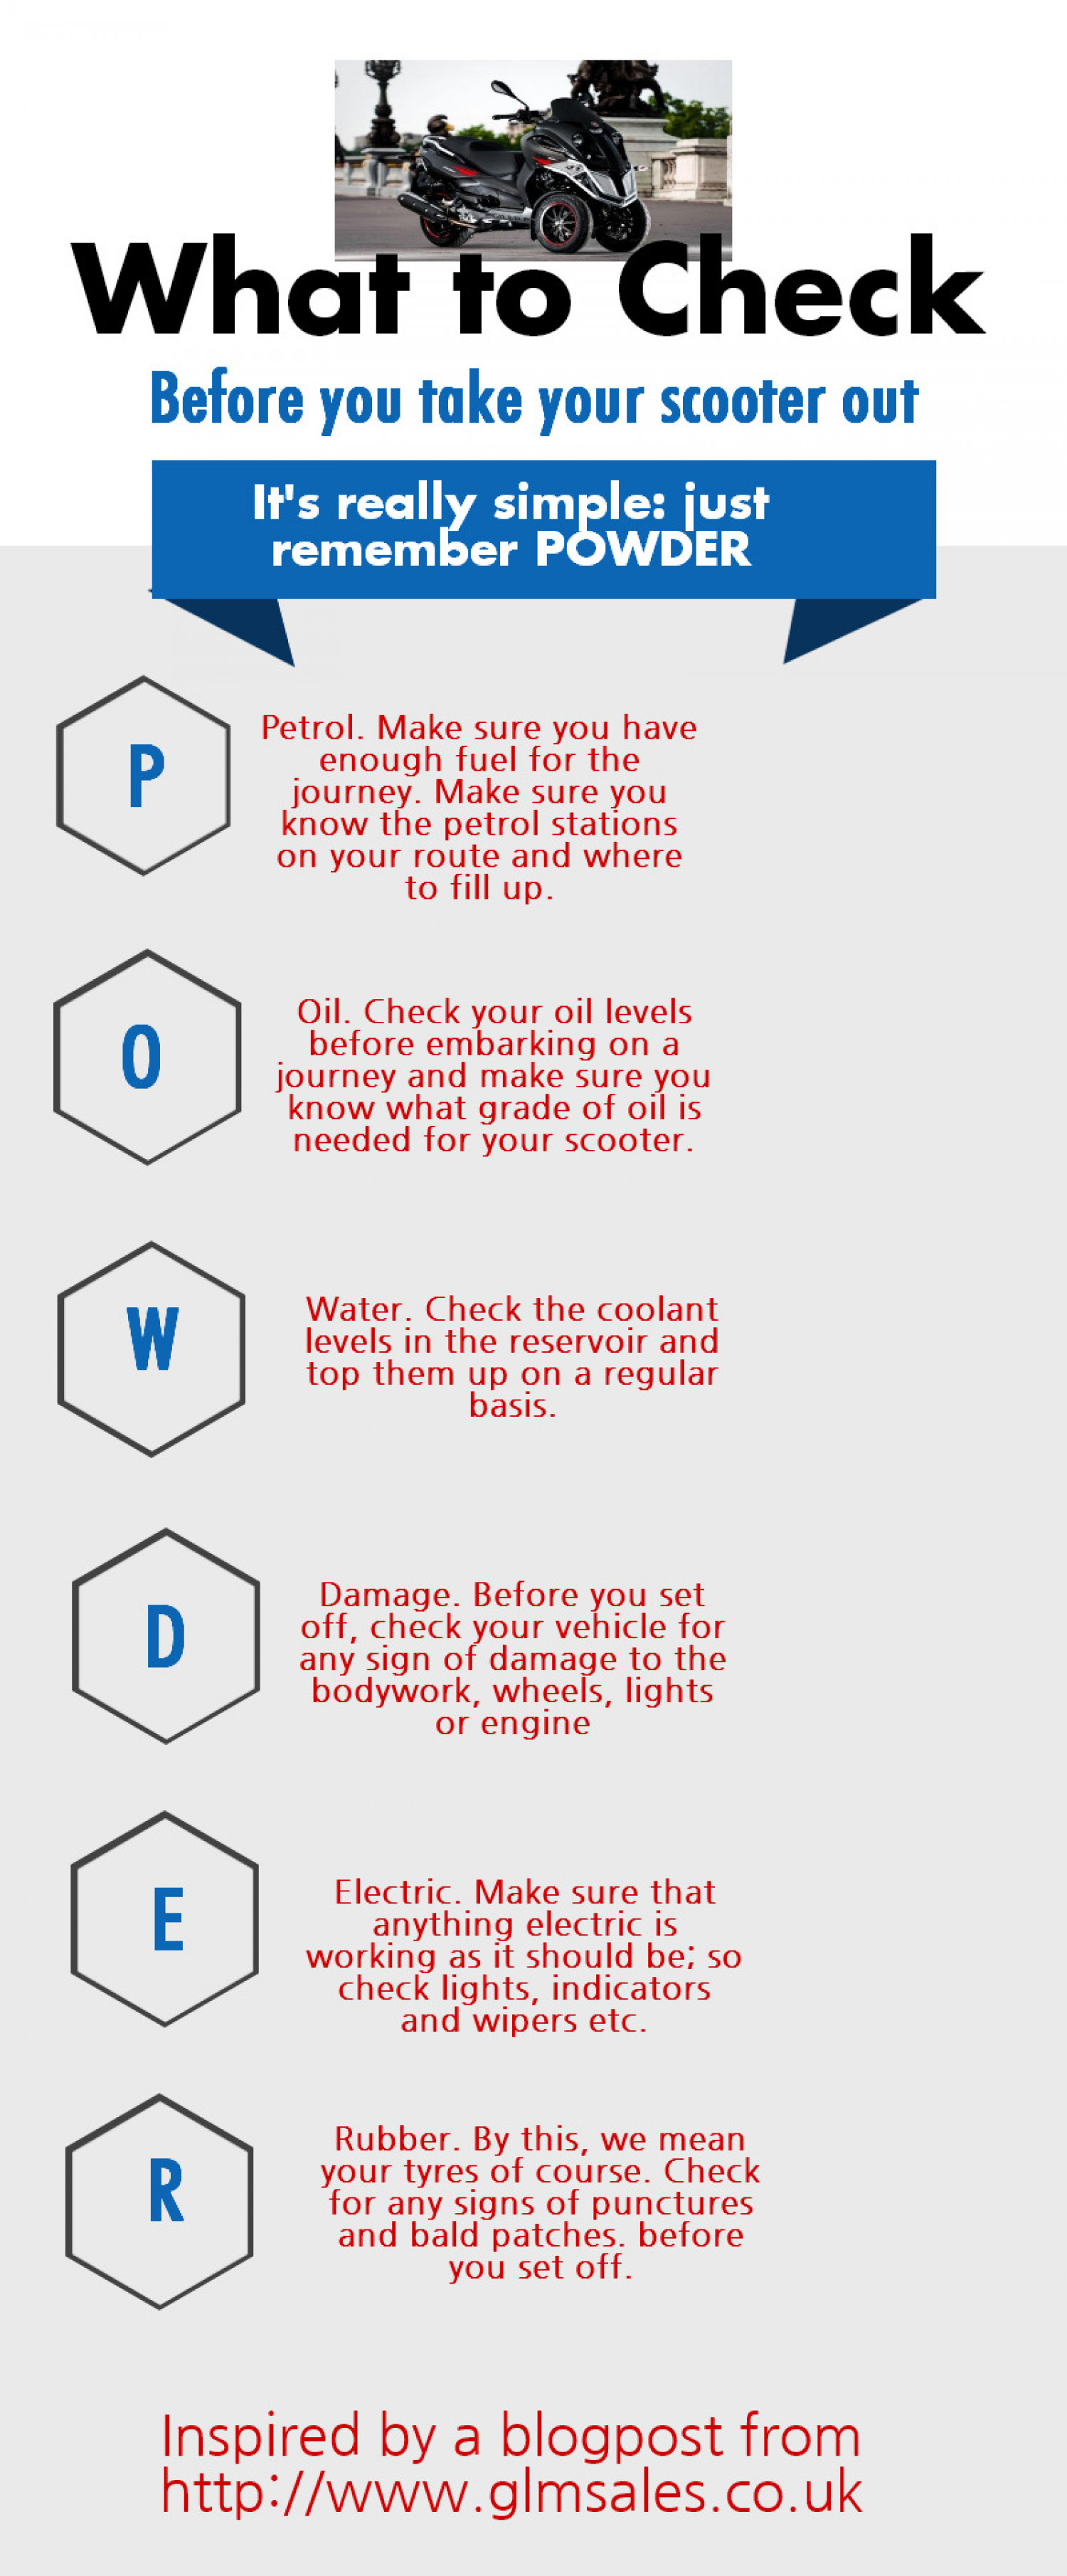 What to Check Before you Take Your Scooter Out Infographic